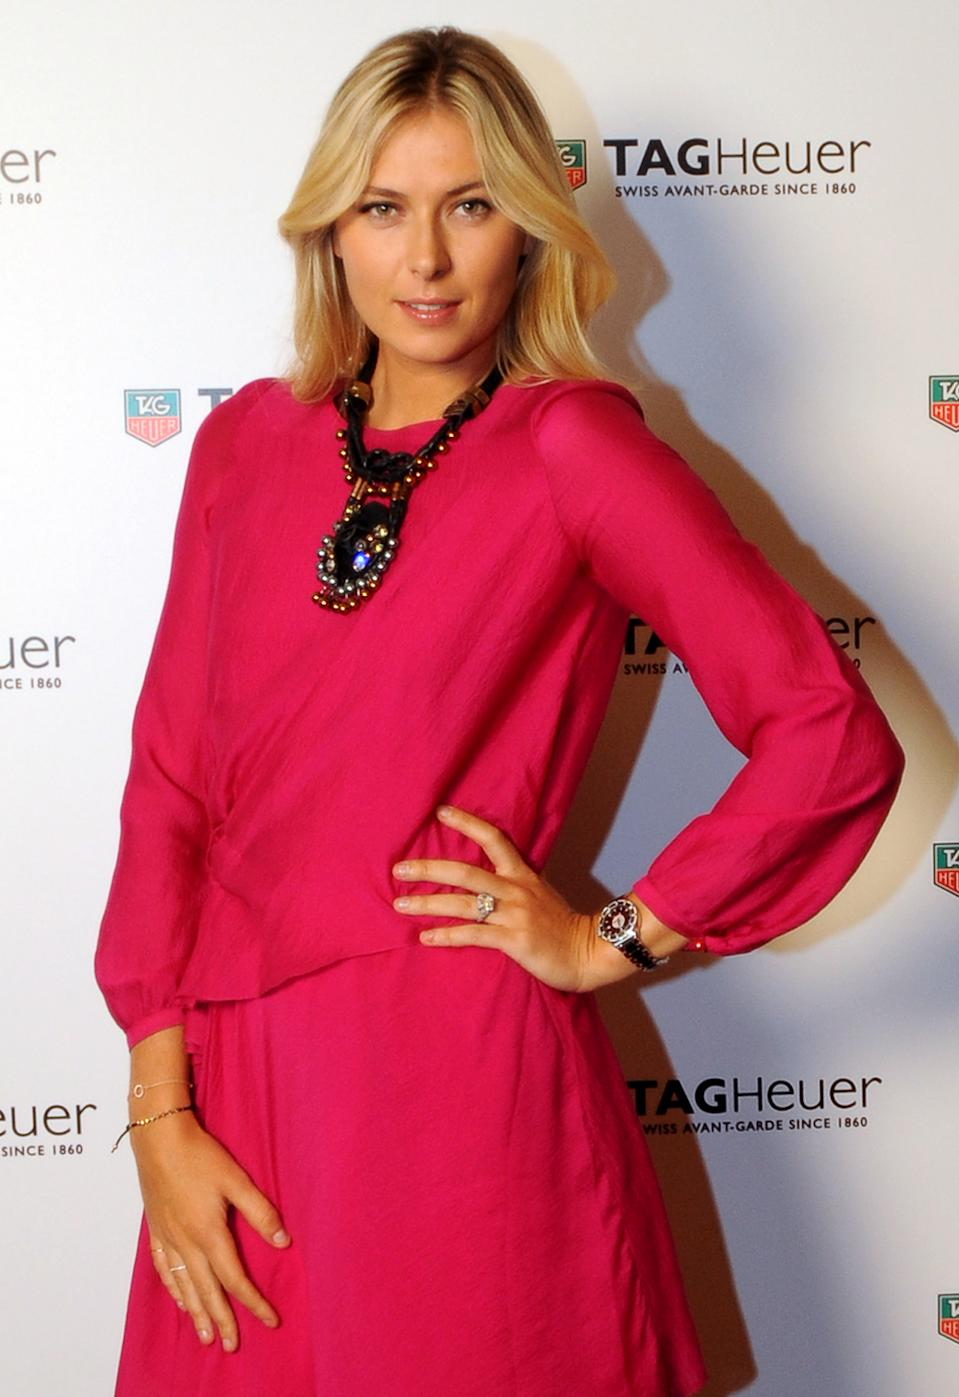 <b>Maria Sharapova</b><br> Russia's Maria Sharapova is ranked world #3 in tennis, but she's also a prominent model and spokesperson. She's appeared in campaigns for big brands like Nike, Tag Heuer and Canon and has been the face of several fashion houses including Cole Haan. (Photo by Burak Kara/Getty Images for Tag Heuer)